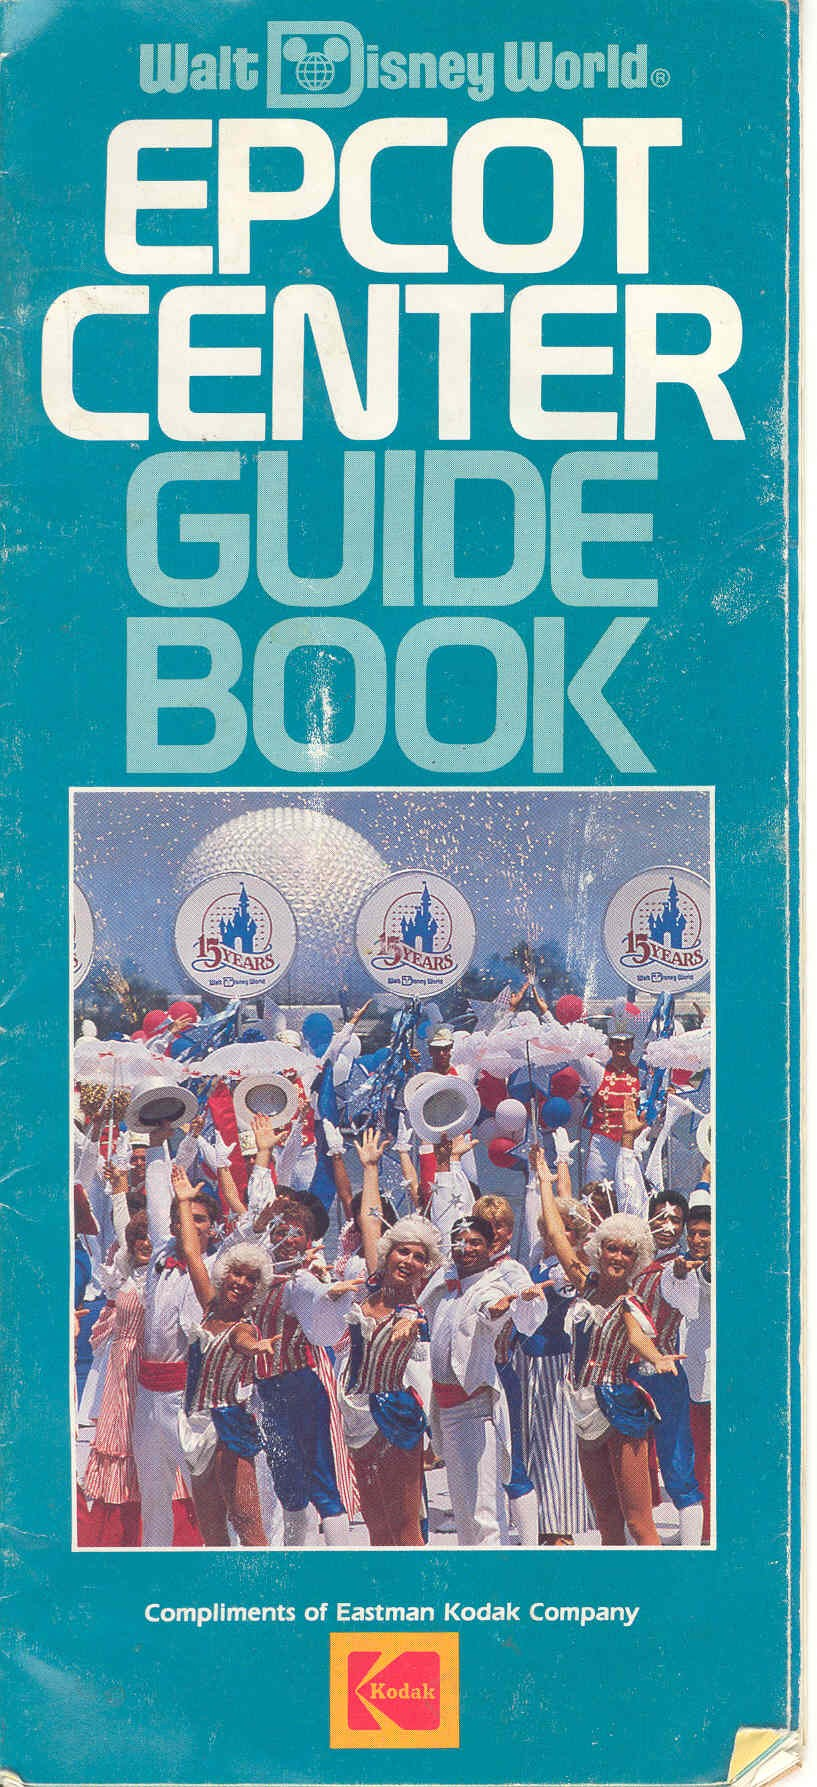 Epcot Center Guide Book 1986